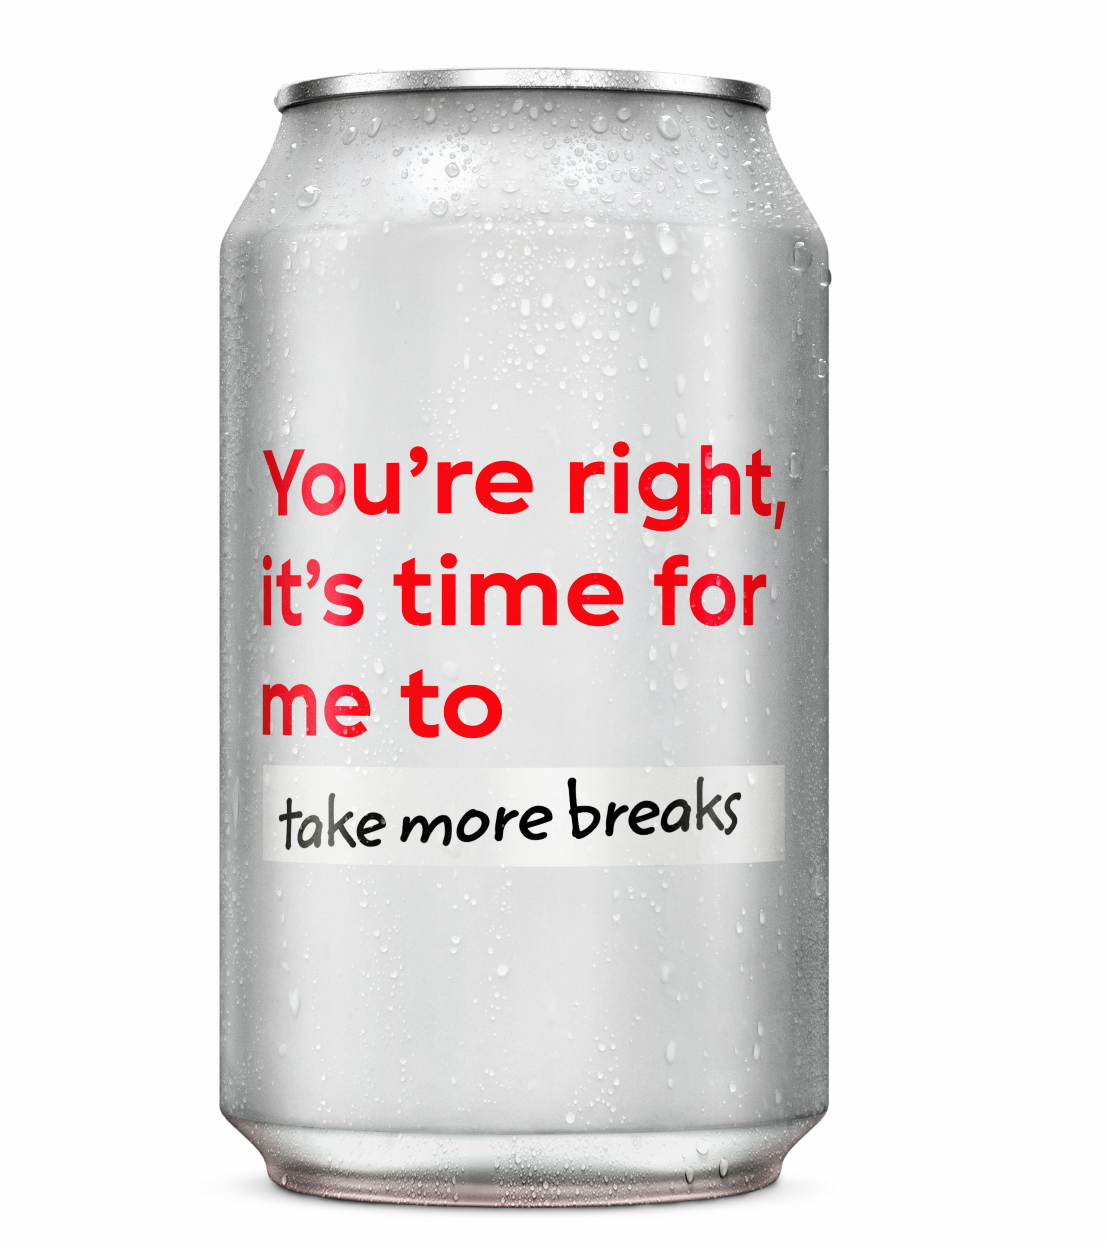 Coke can with the 'Take more breaks' resolution written on it.